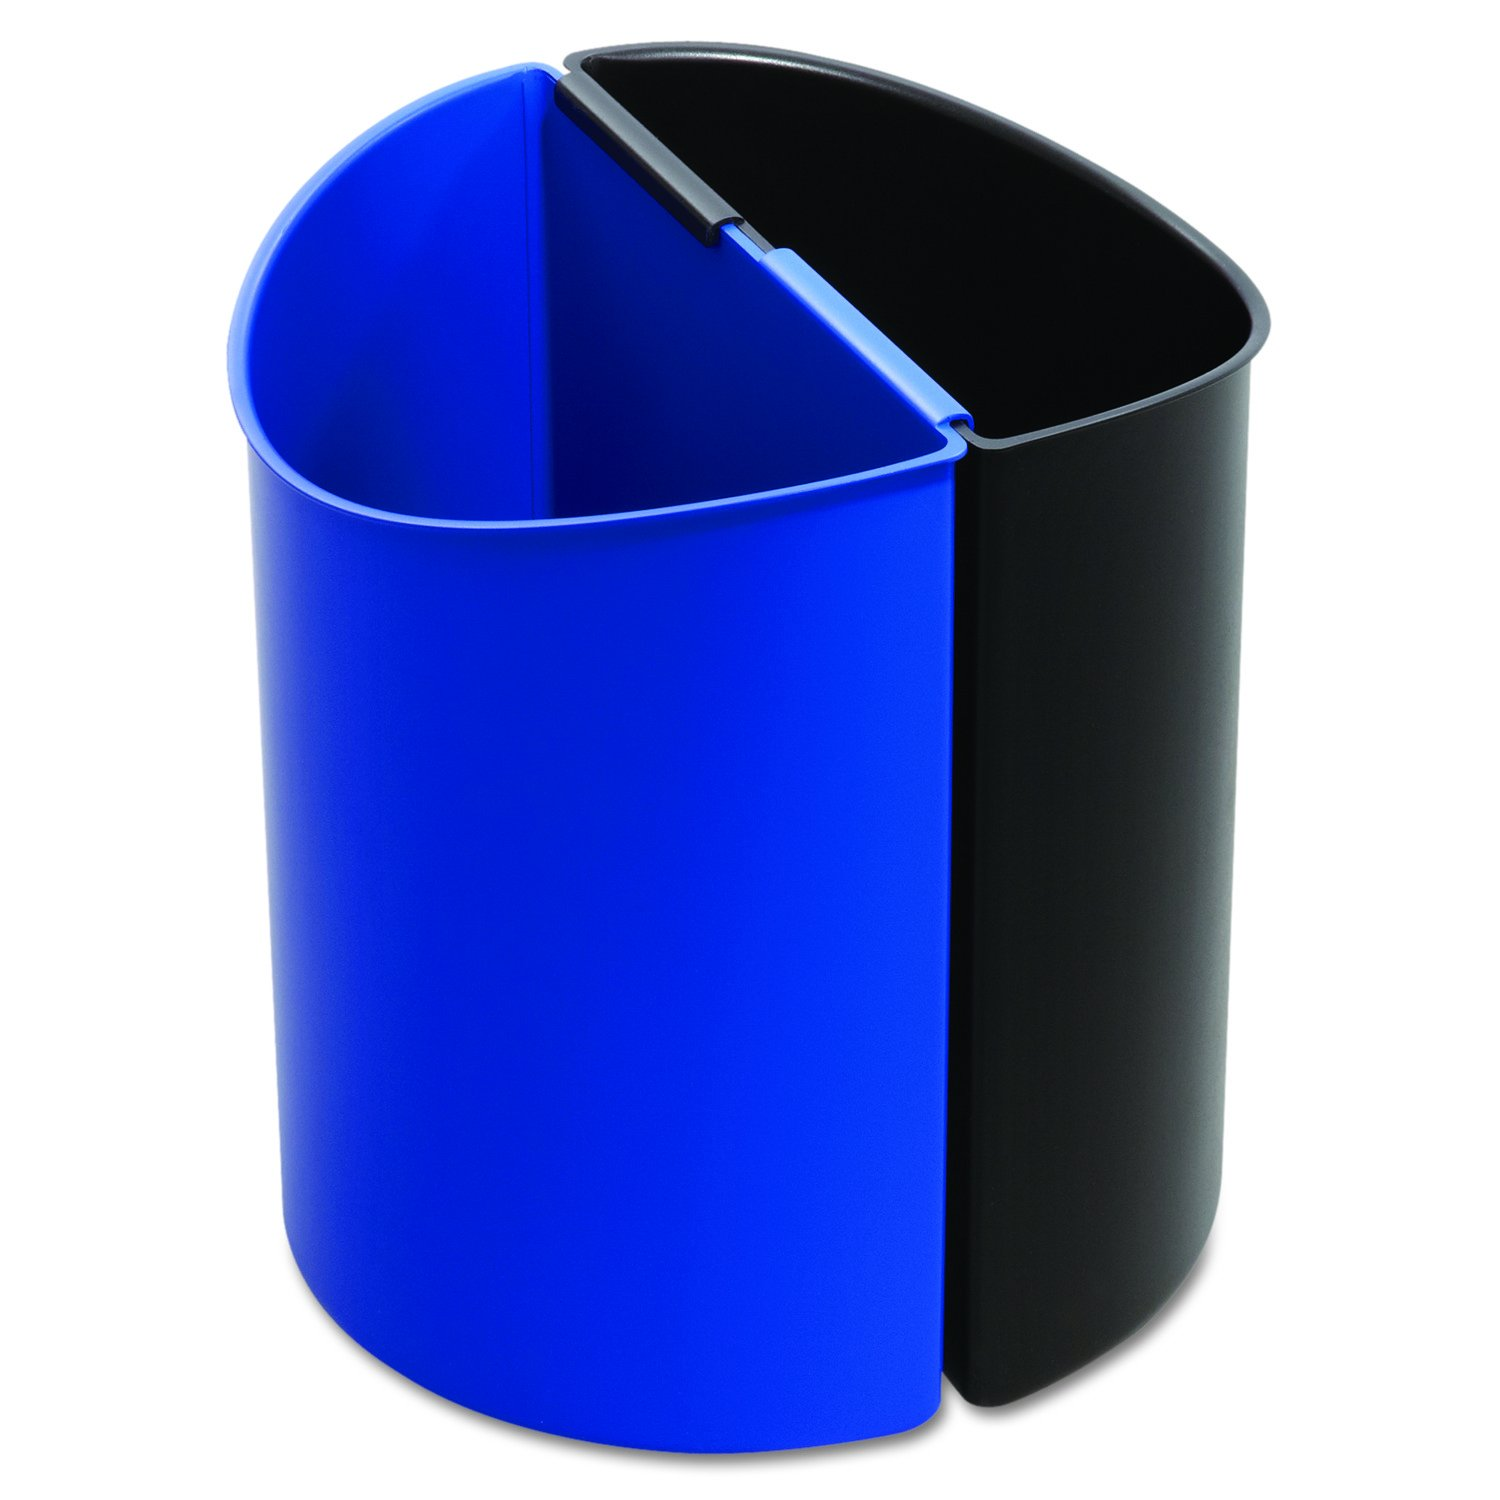 Safco Products 9928BB Desk-Side Waste Recycling Trash Can, 7-Gallon, Black/Blue by Safco Products